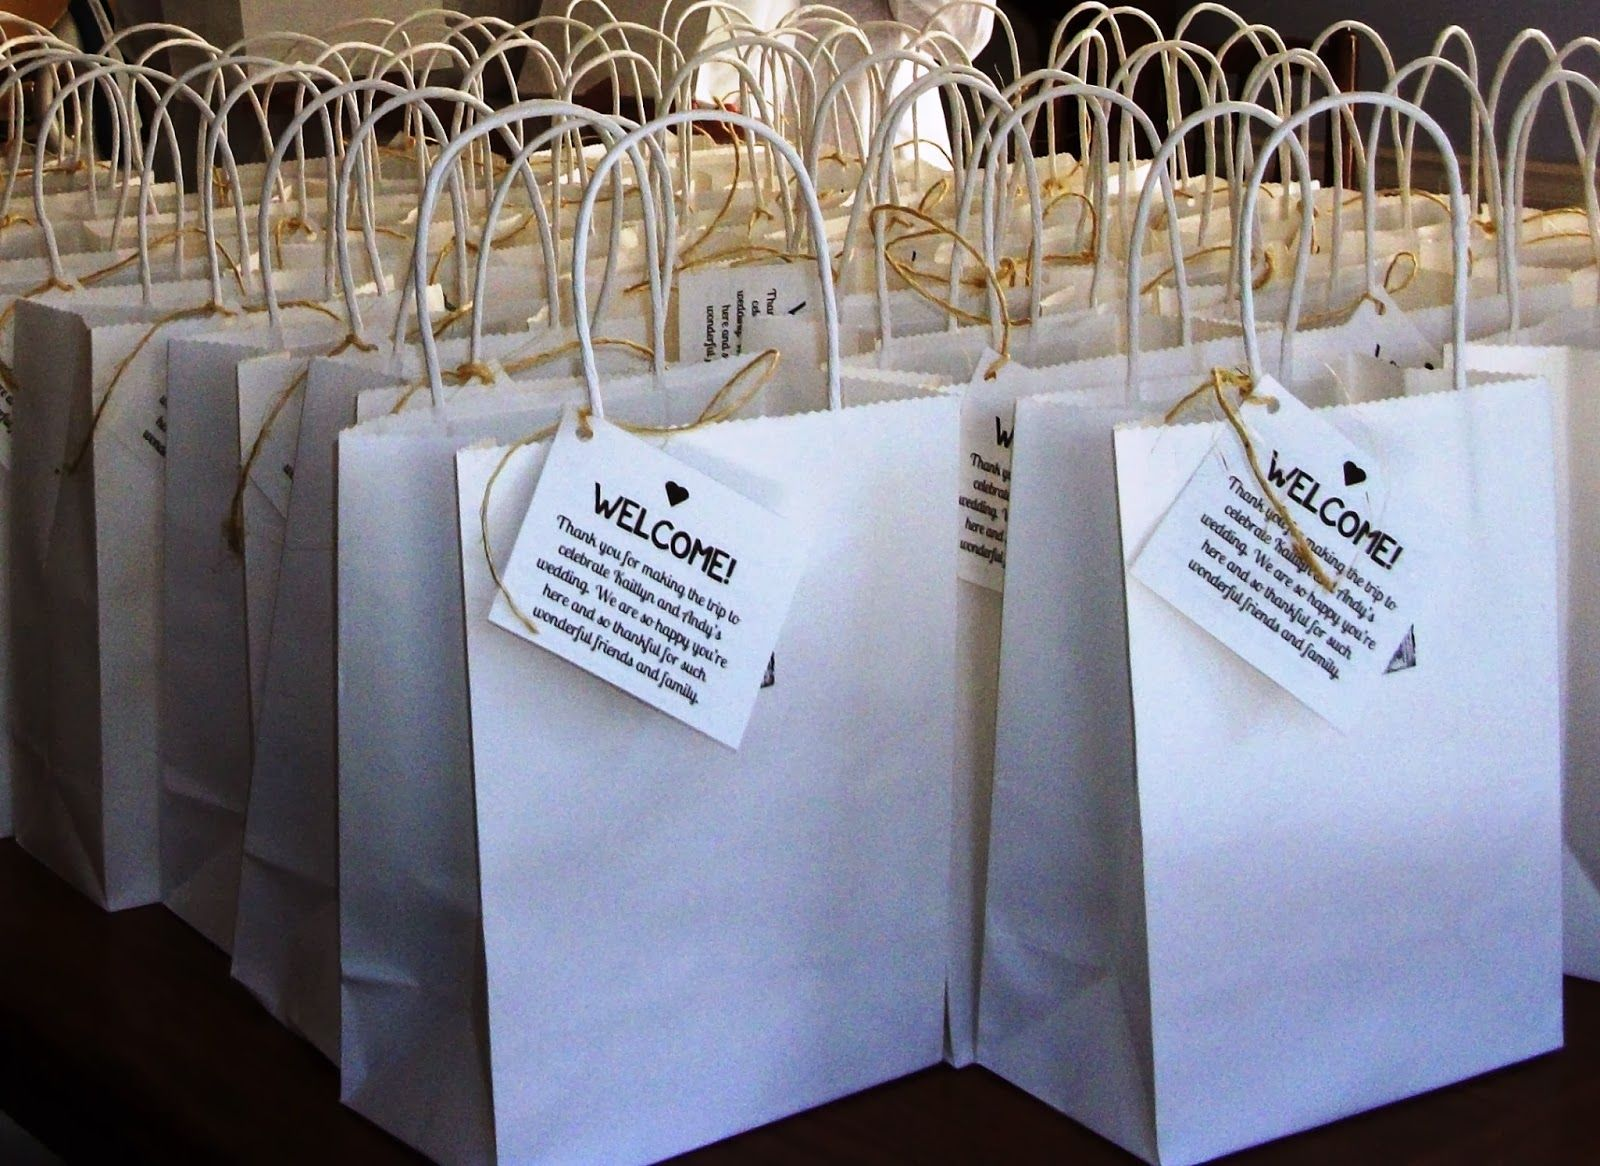 Gifts For Out Of Town Wedding Guests: Lovely Ache: Wedding Welcome Bags For Out-of-Town Guests